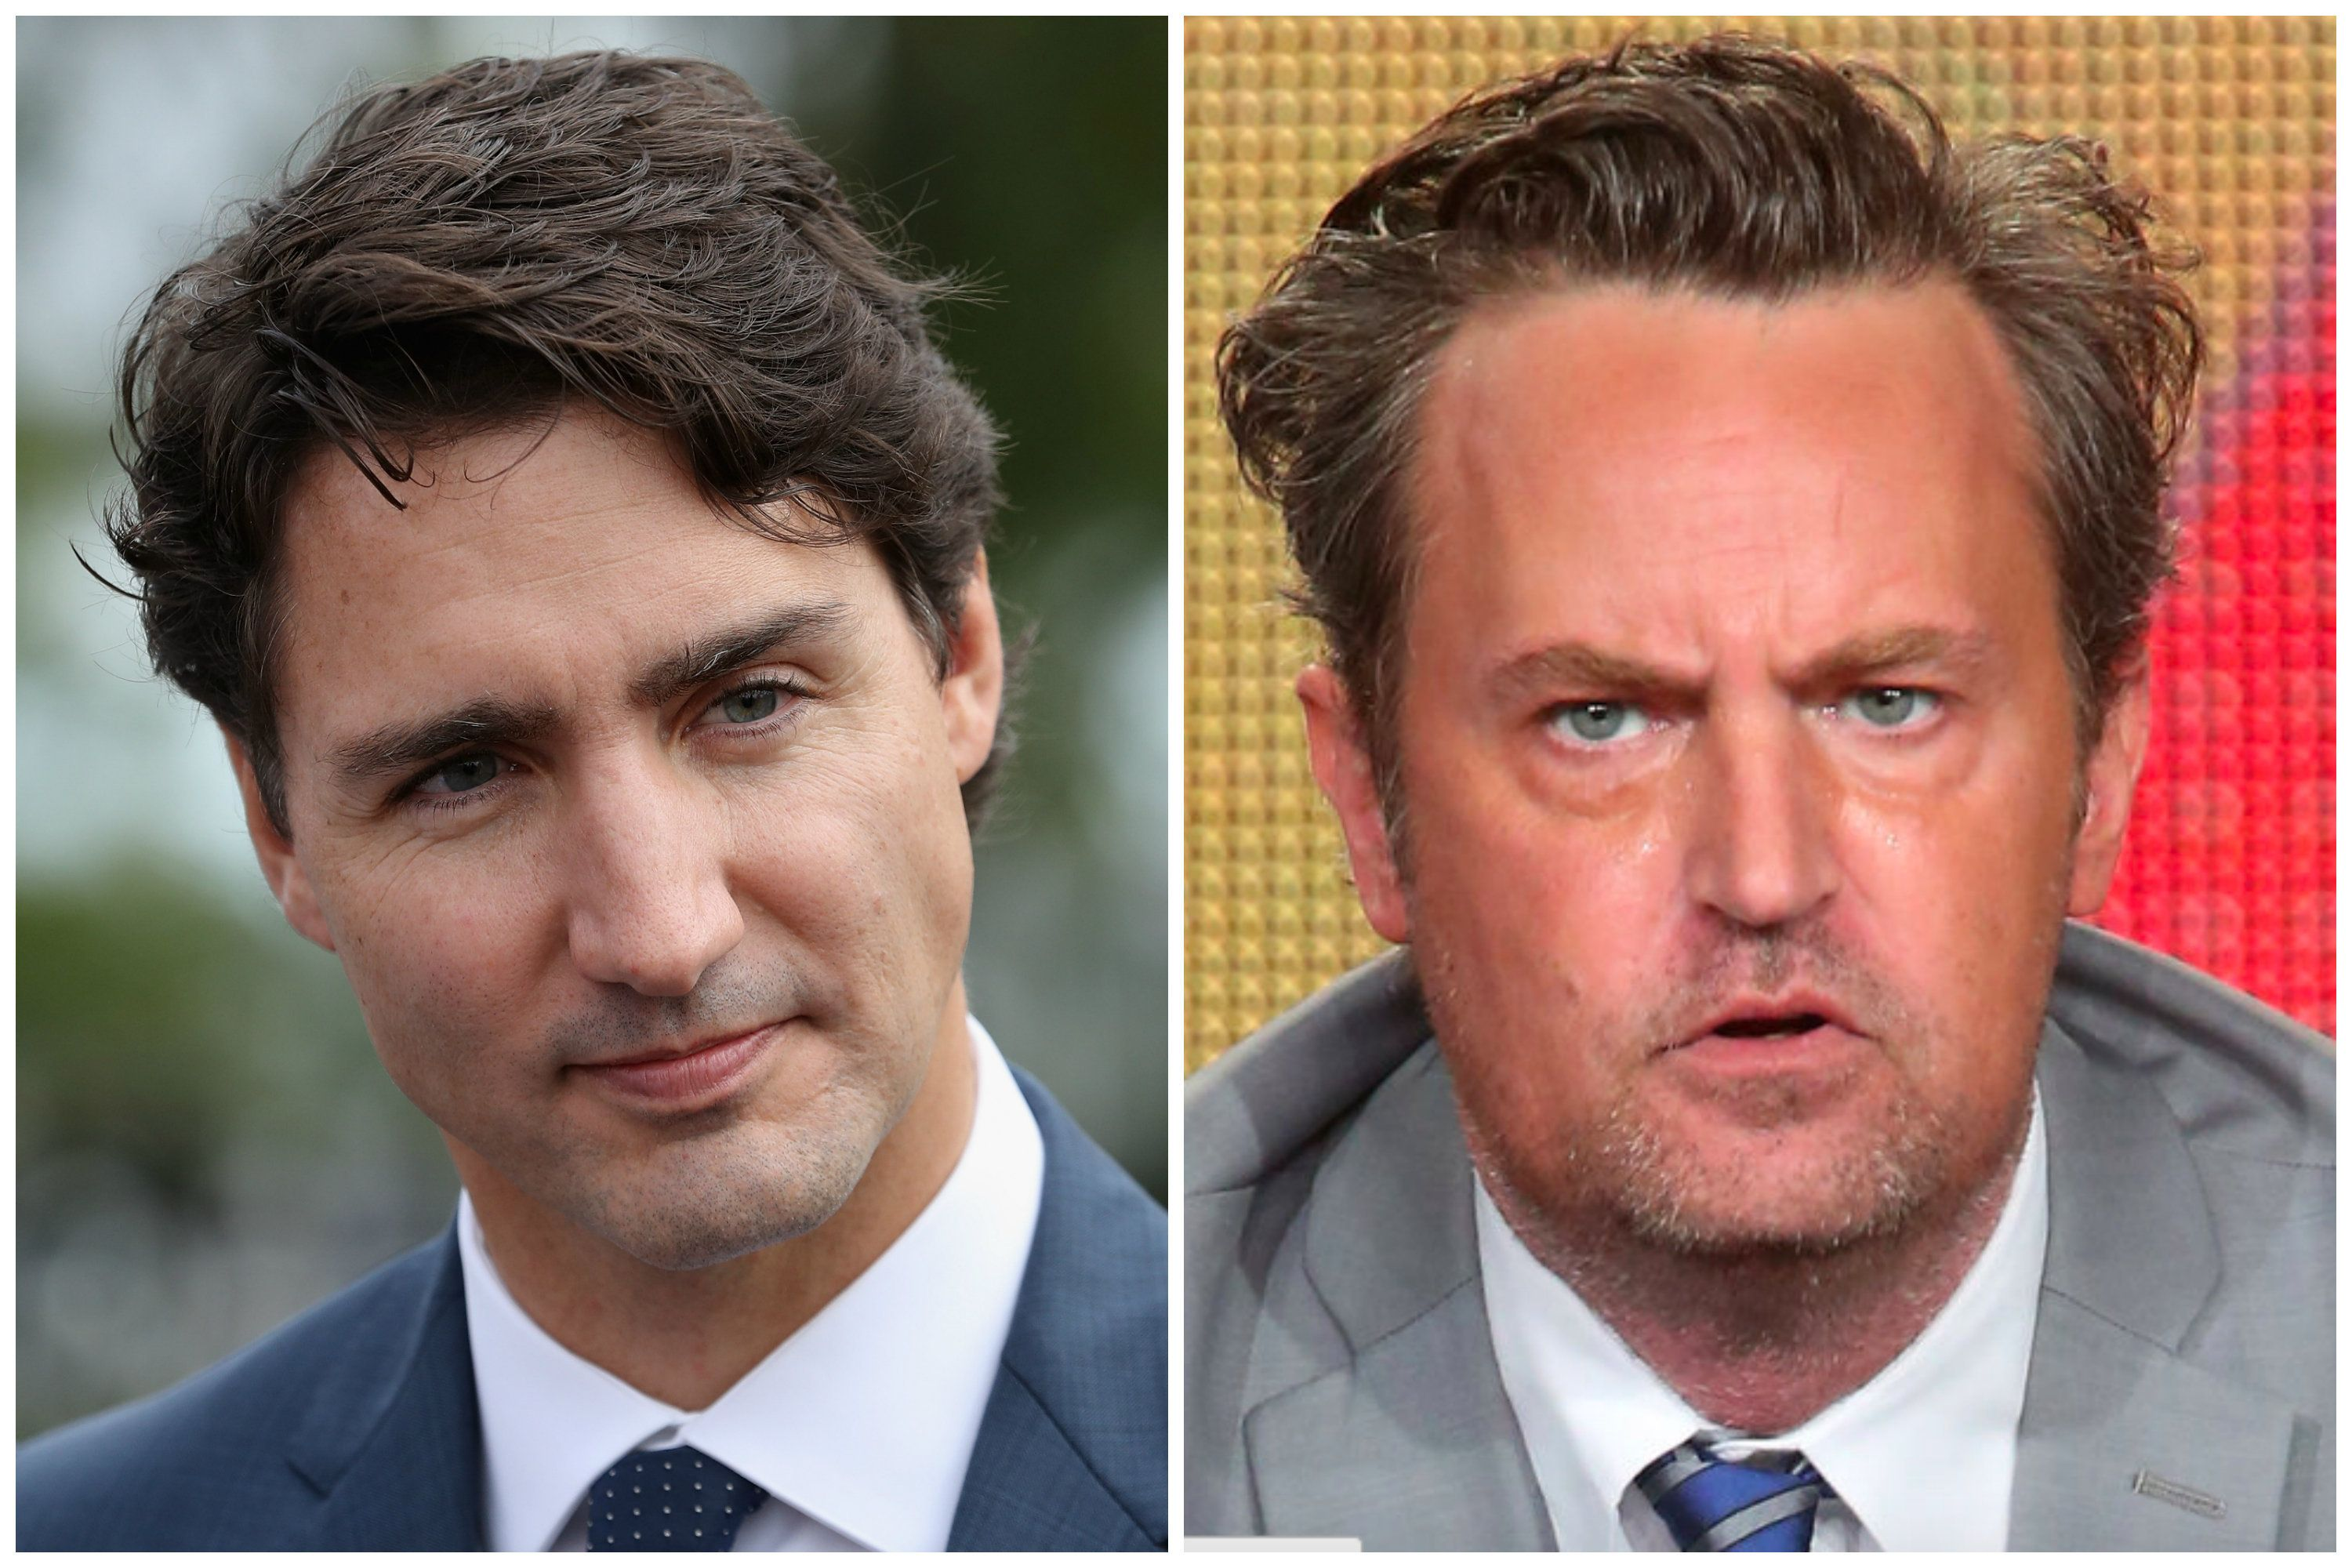 Matthew Perry once beat upJustin Trudeau. Now,Trudeau wants todefend